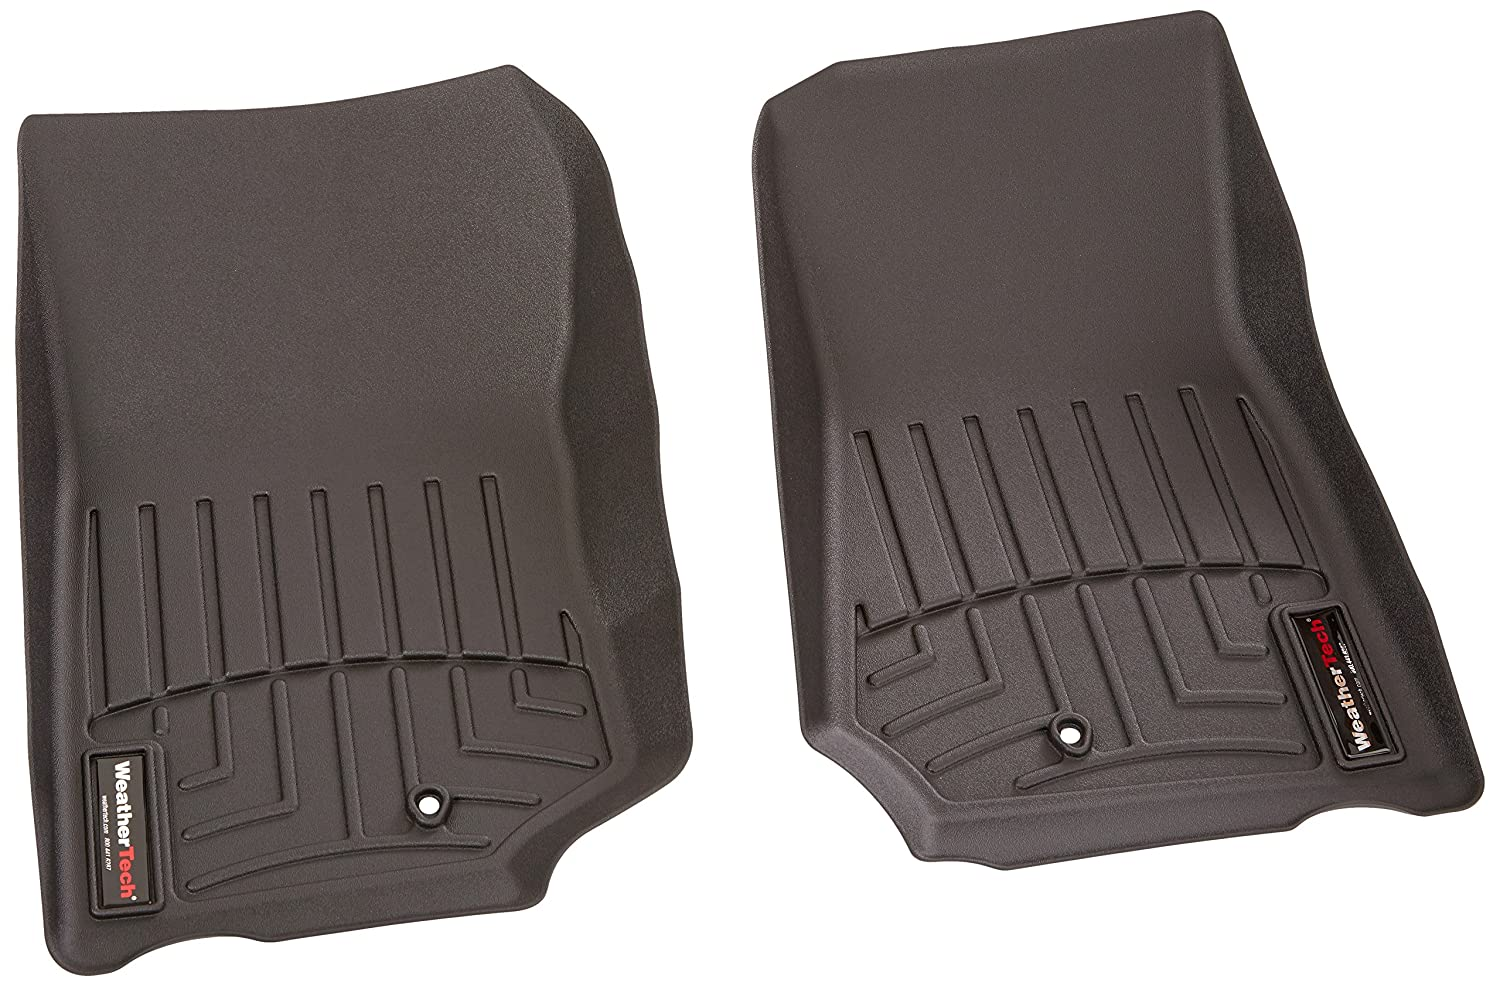 striking sale weathertech liner for mats pictures floors carweathertech liners floor ideas amazons